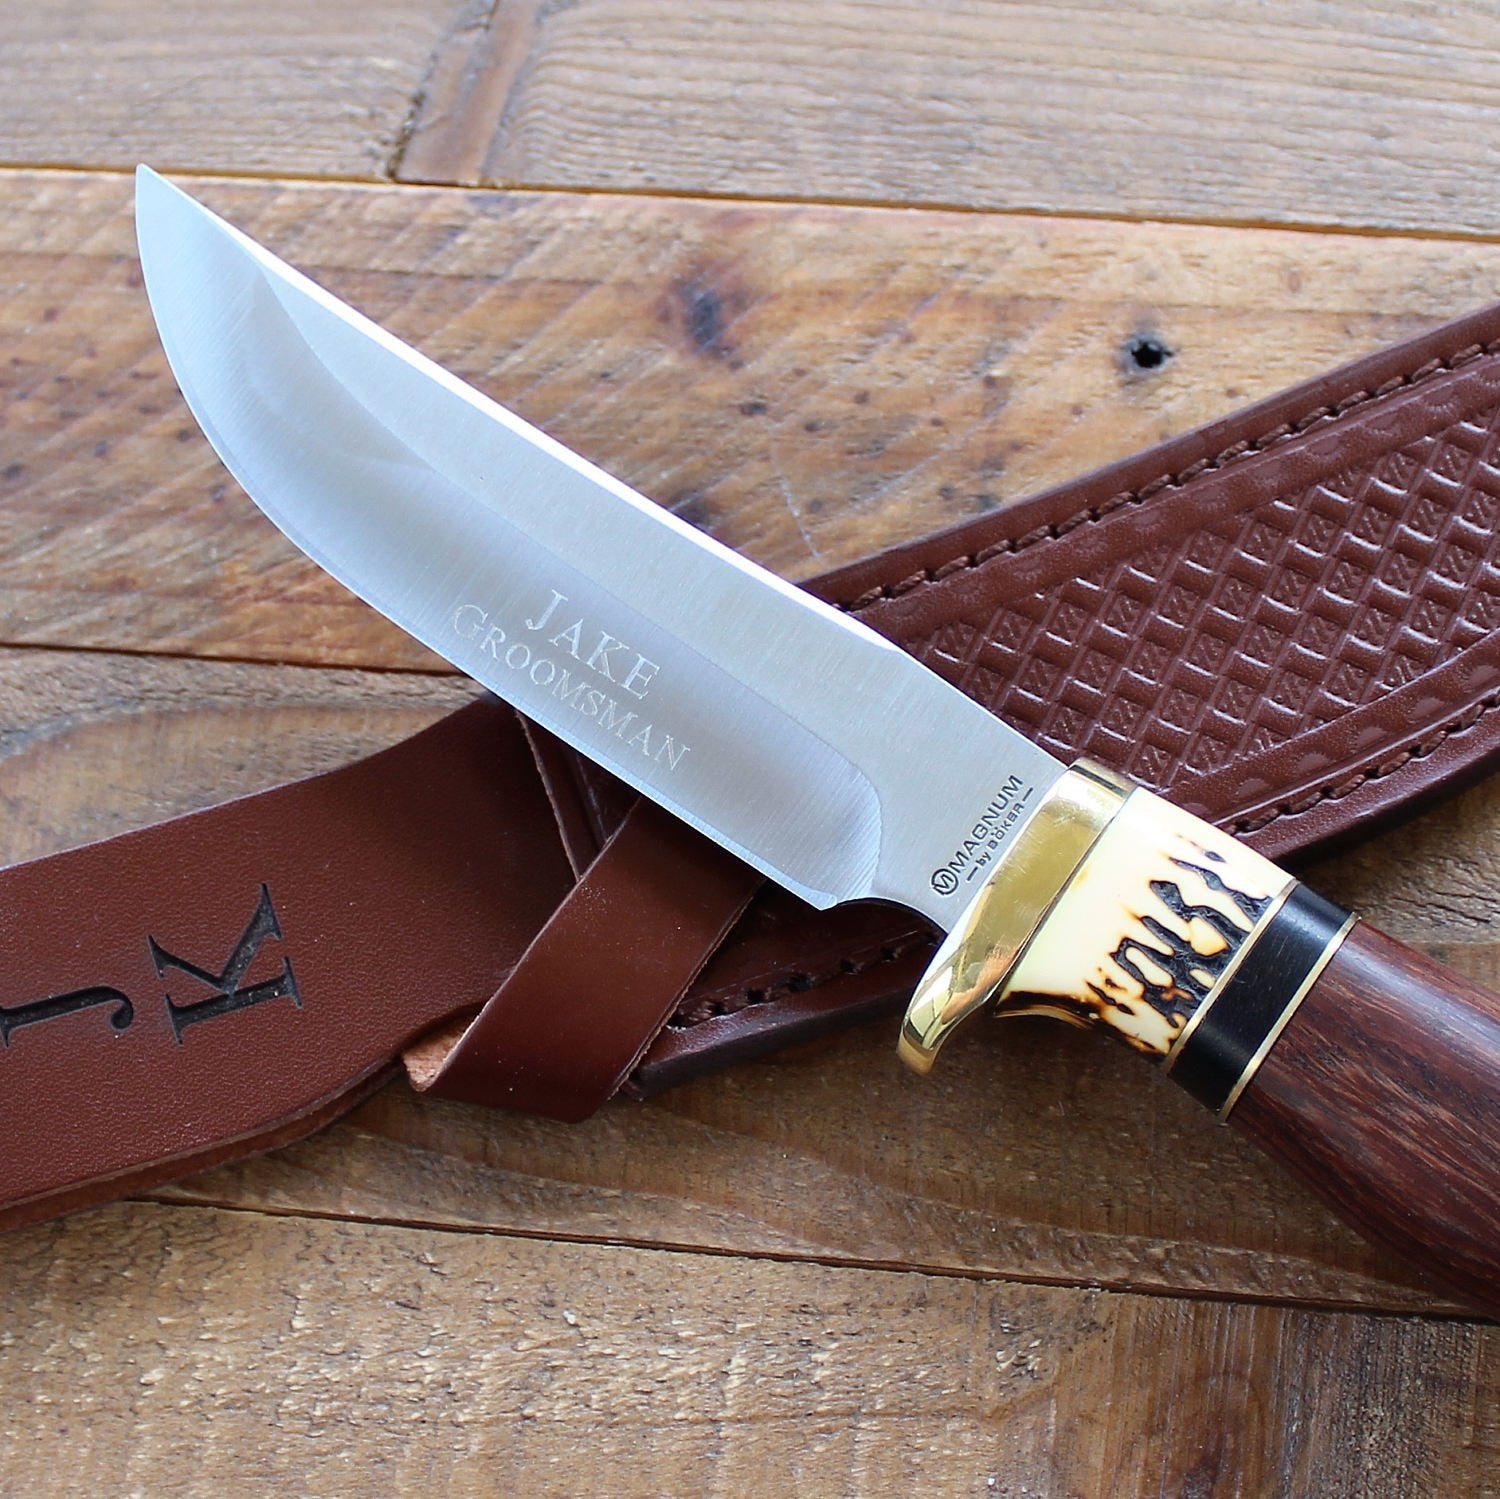 Boker Magnum Premium Skinner Fixed Blade Knife with Pakkawood Handle -  Personalized Groomsmen Gifts, Hunting, Camping, Father's Day, Dad